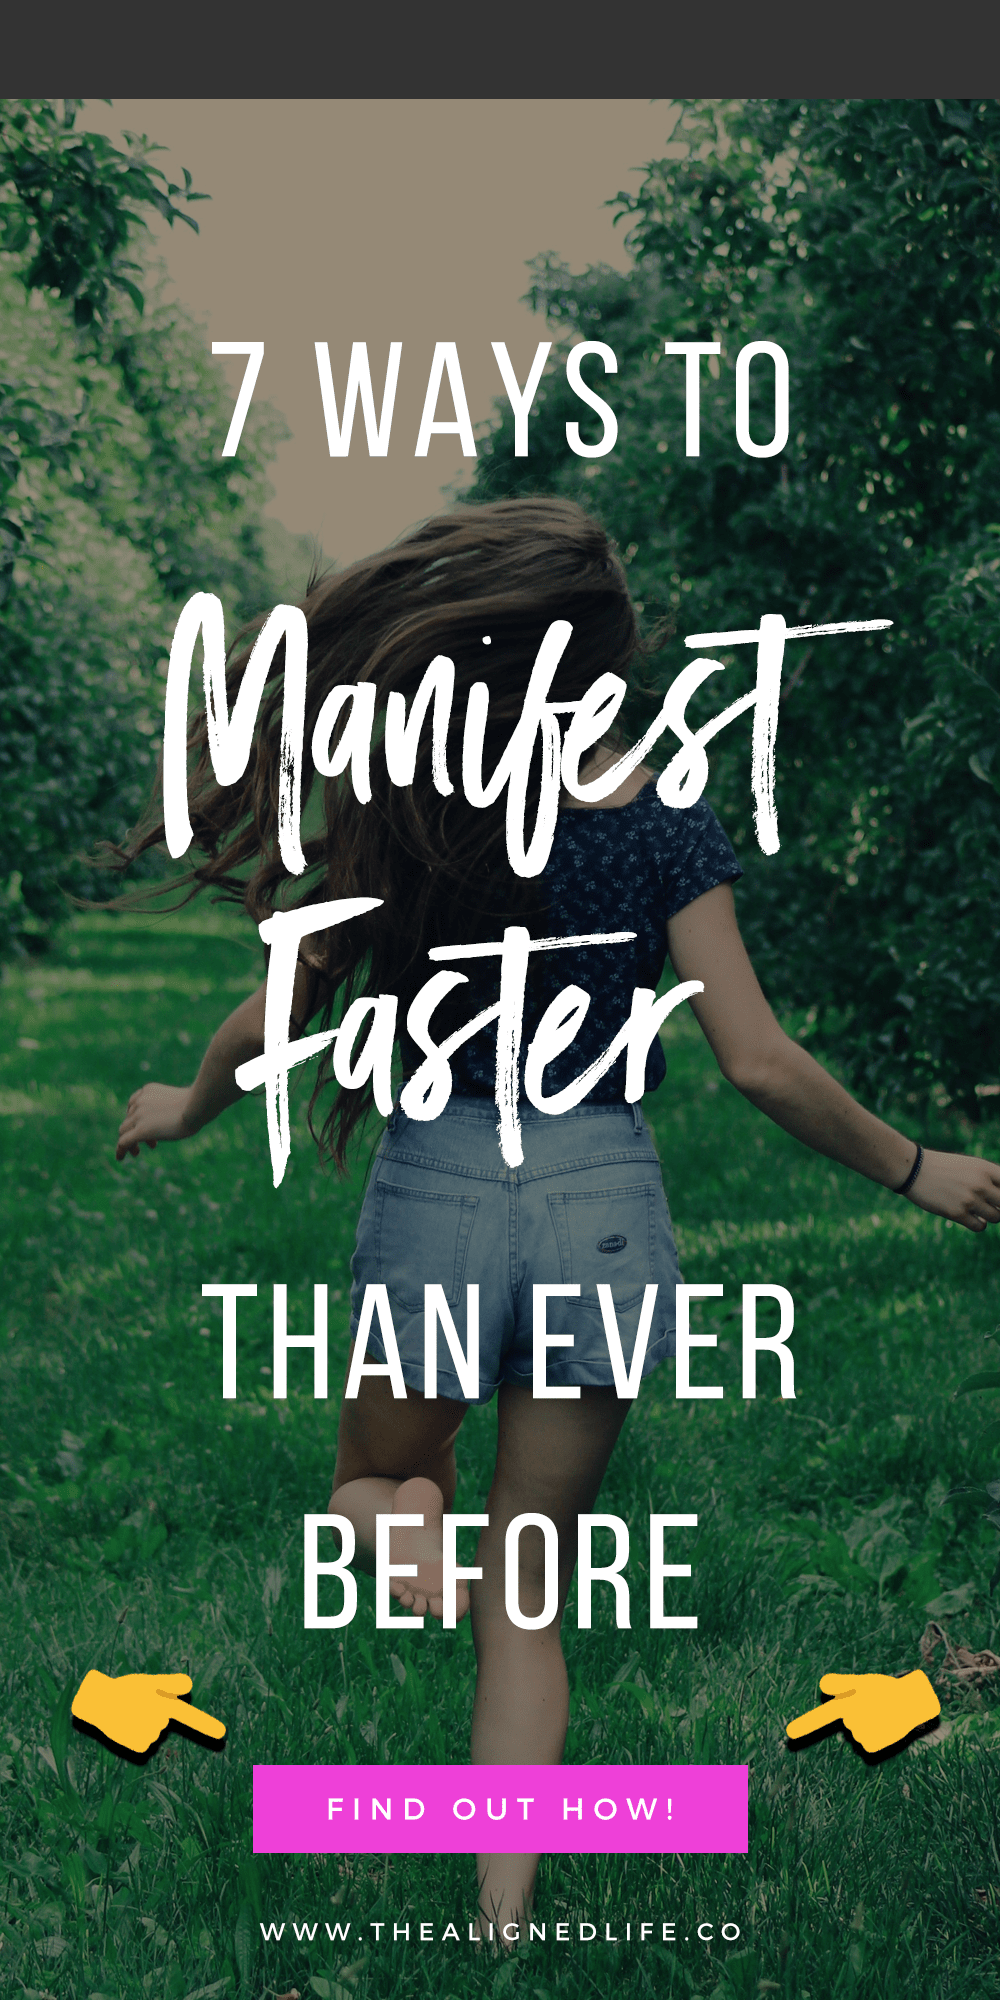 7 Ways To Manifest Faster Than Ever Before